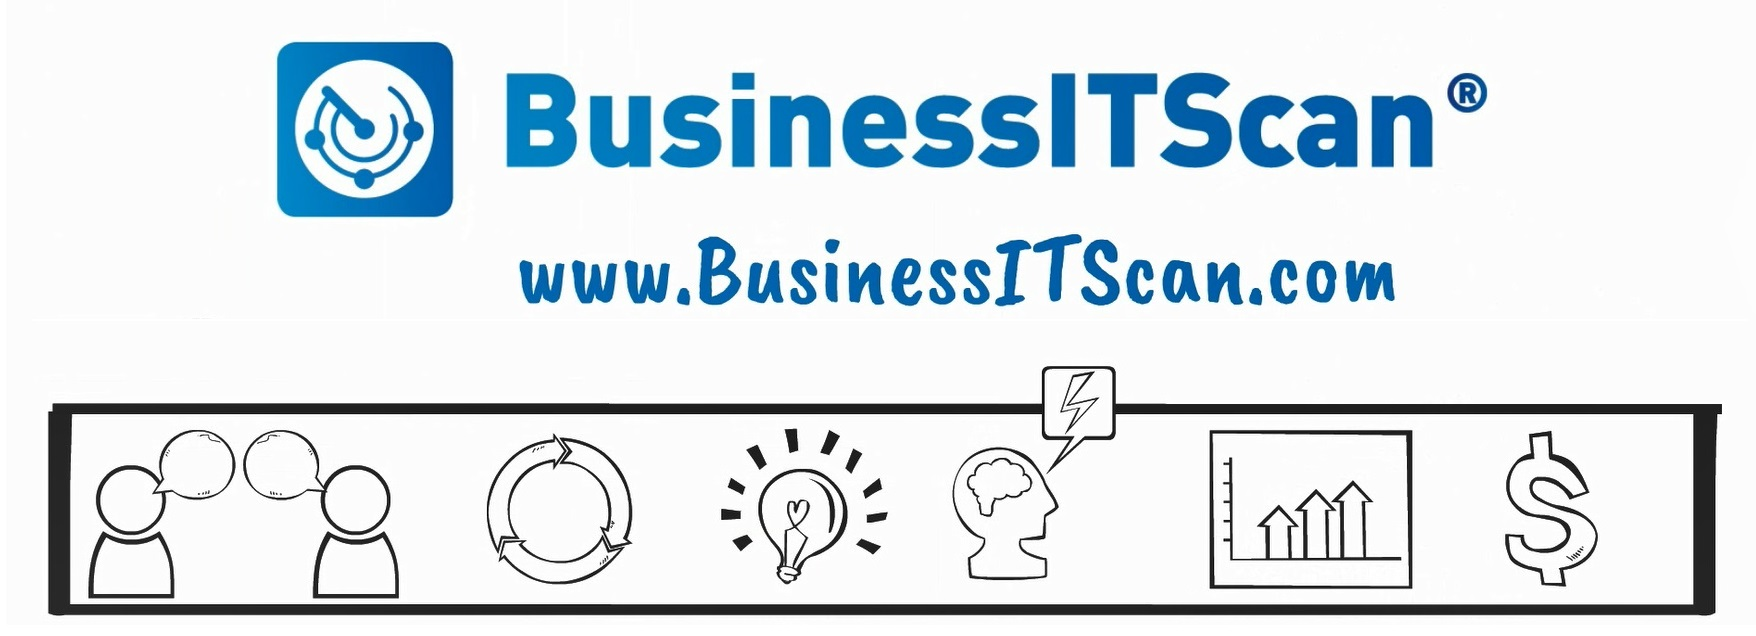 BusinessITScan - Itsteamwork